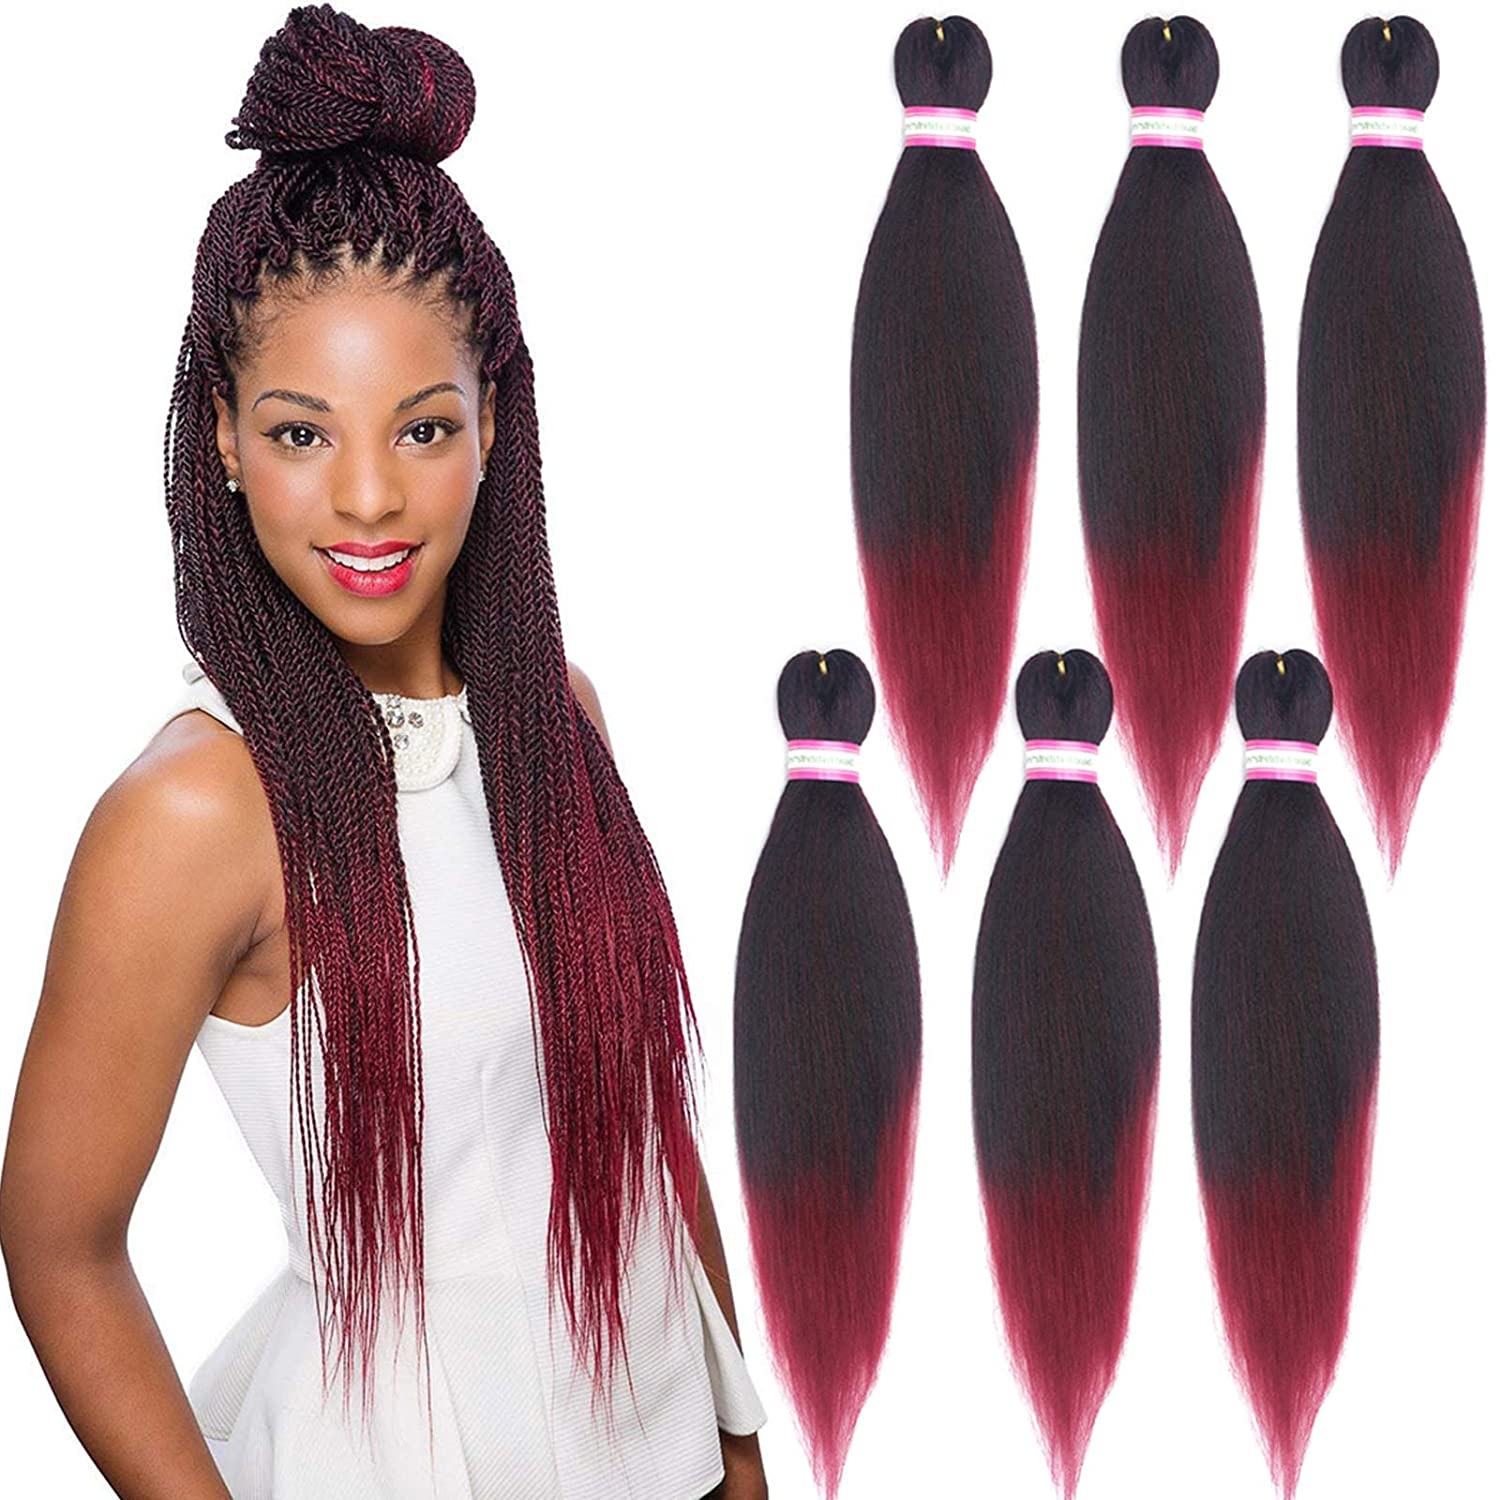 Pre Stretched Braiding Hair 11 Inch 11 Packs Yaki Synthetic Ombre Color  Professional Braiding Hair Extensions for Crochet Braids Twist Hair